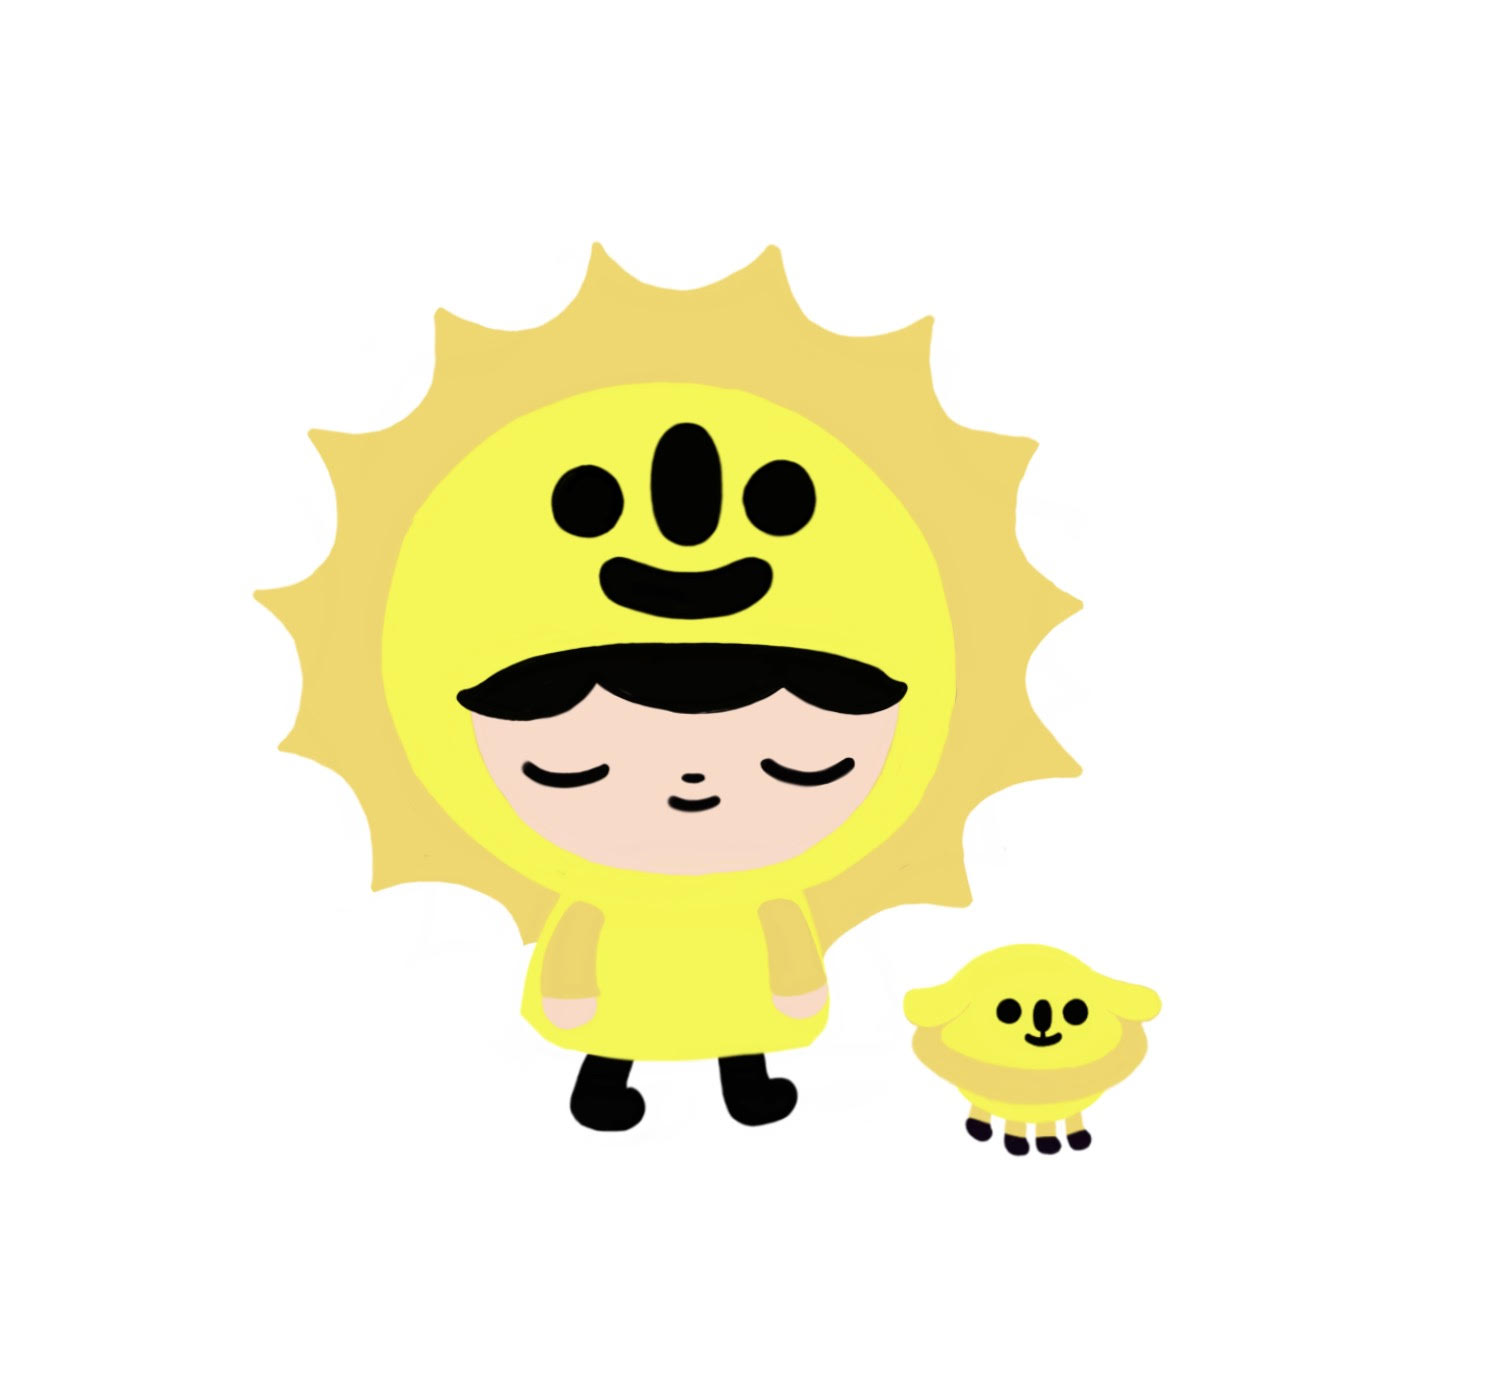 Initial concept design of Sunny and Saturn